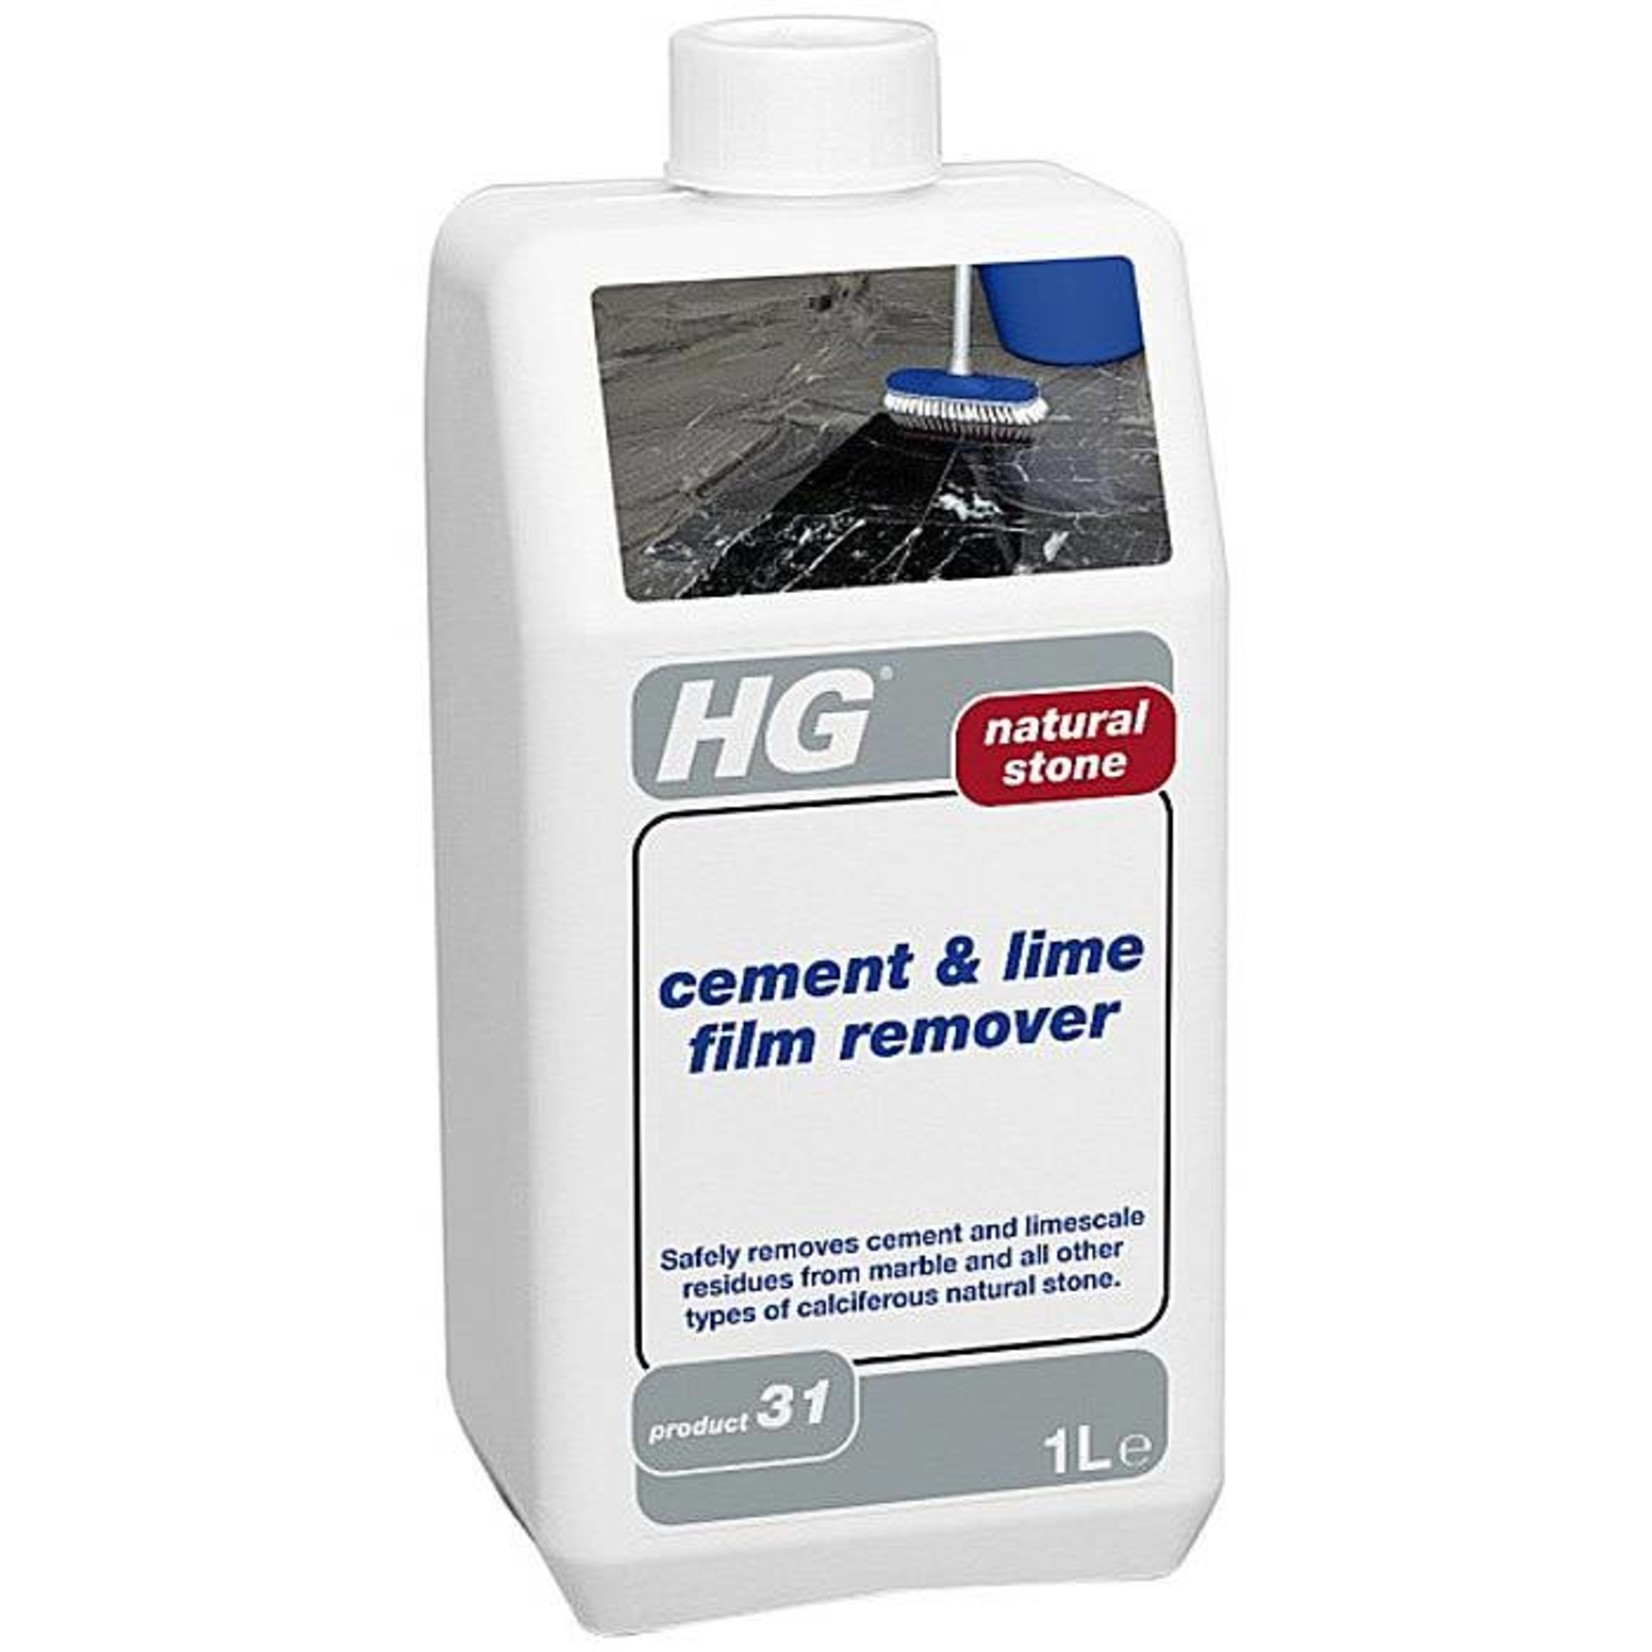 HG Hg Cement & Lime Film Remover 1L